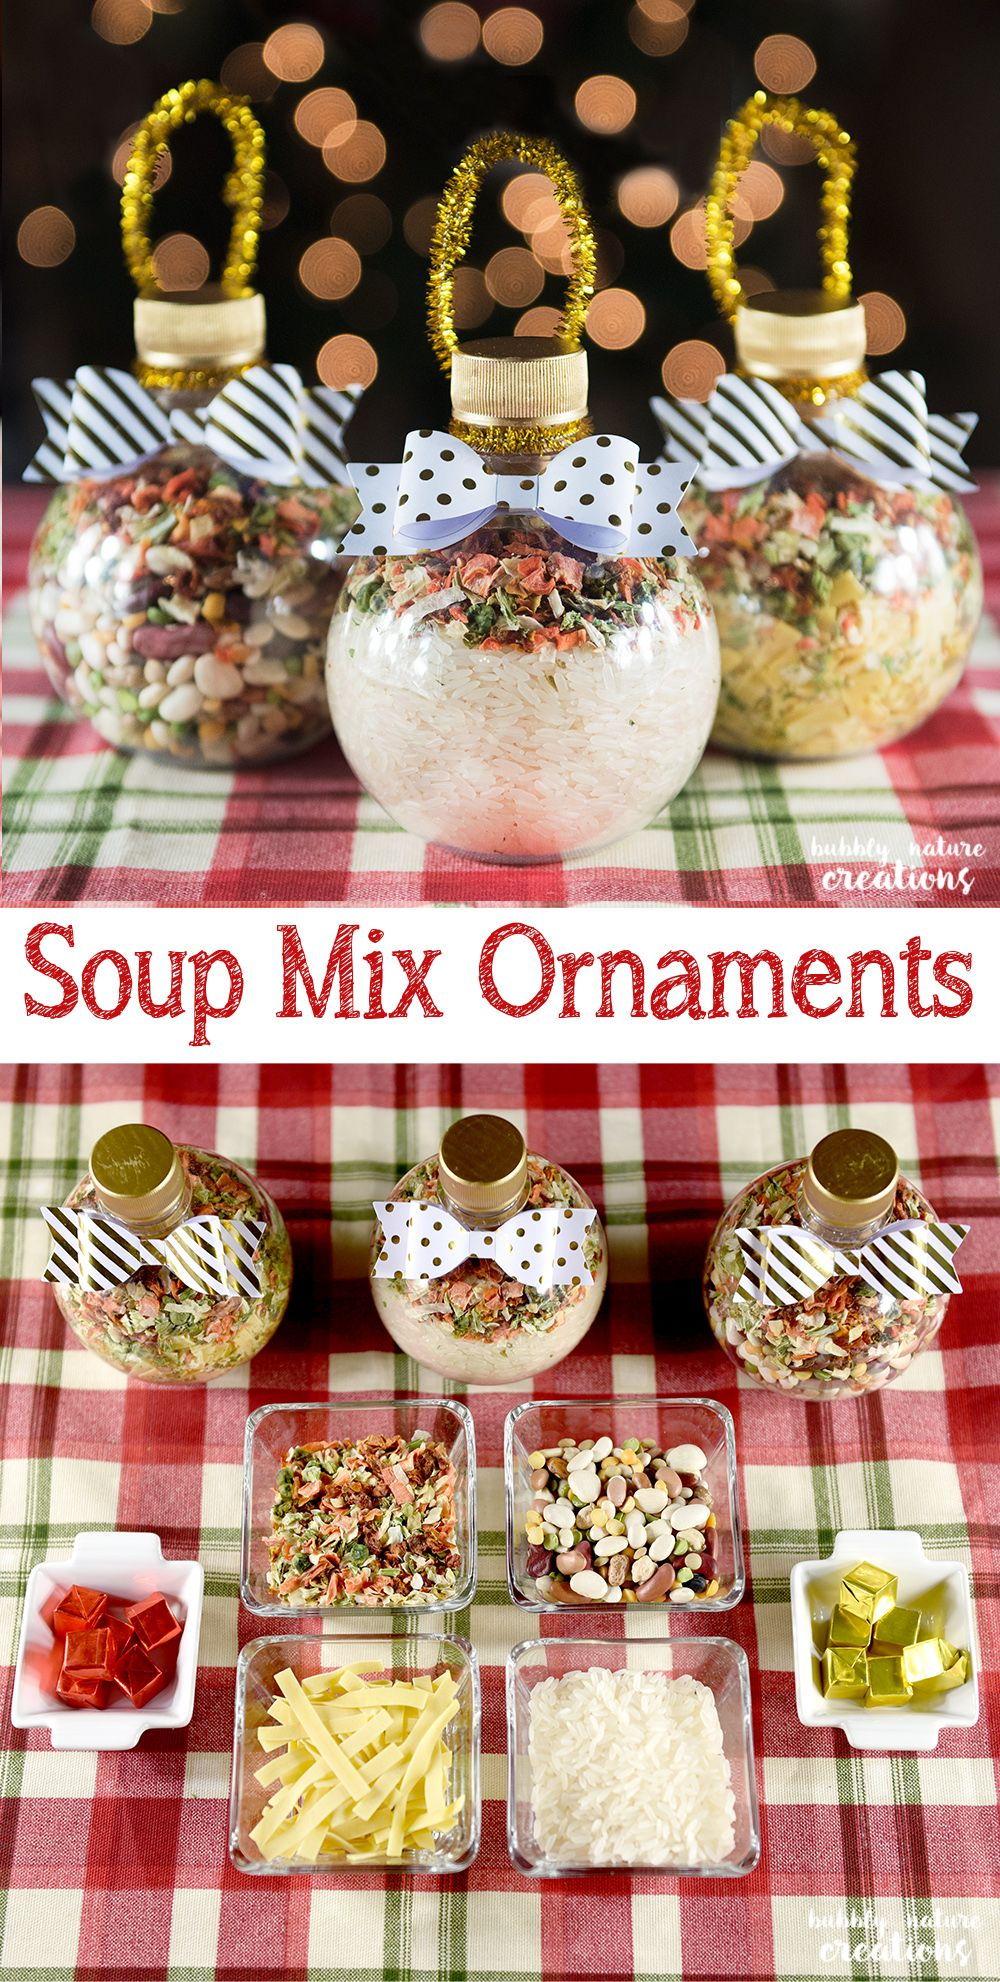 Soup Mix Ornaments Diy christmas gifts, Food gifts